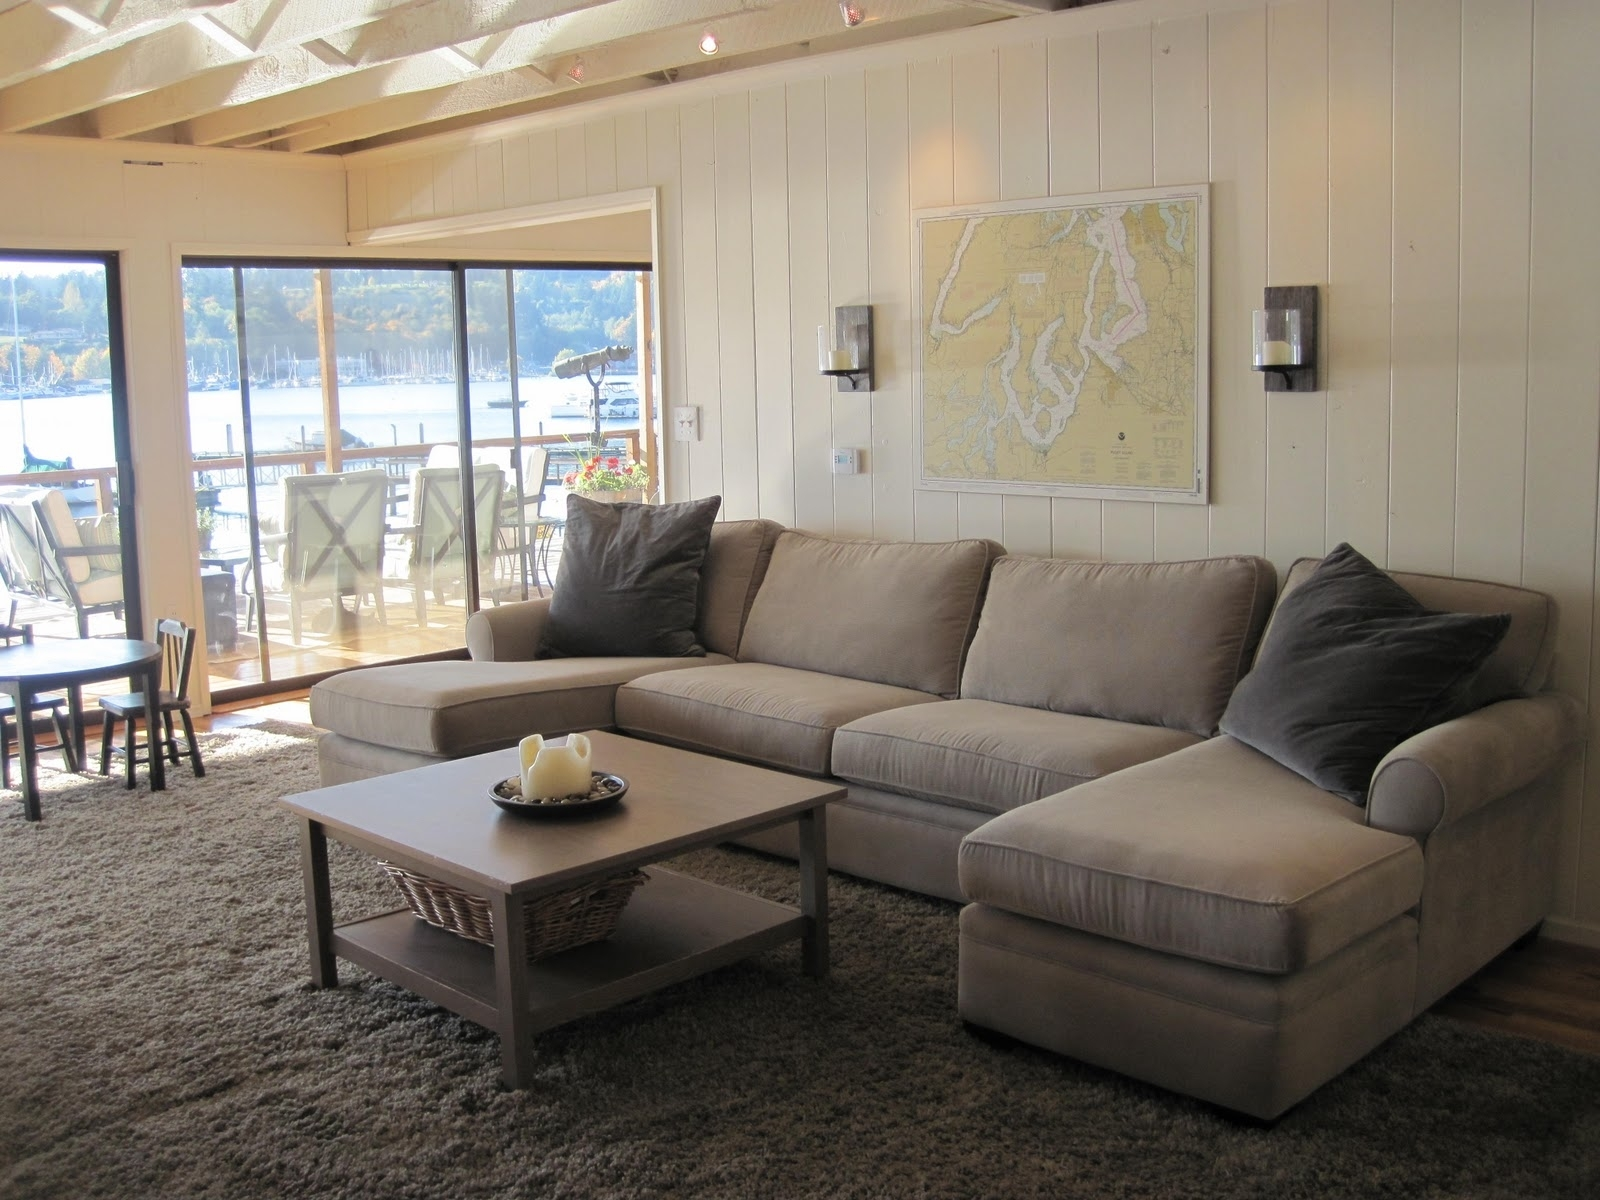 U Shaped Sectional With Chaise Design | Homesfeed Regarding Big U Shaped Sectionals (Image 10 of 10)